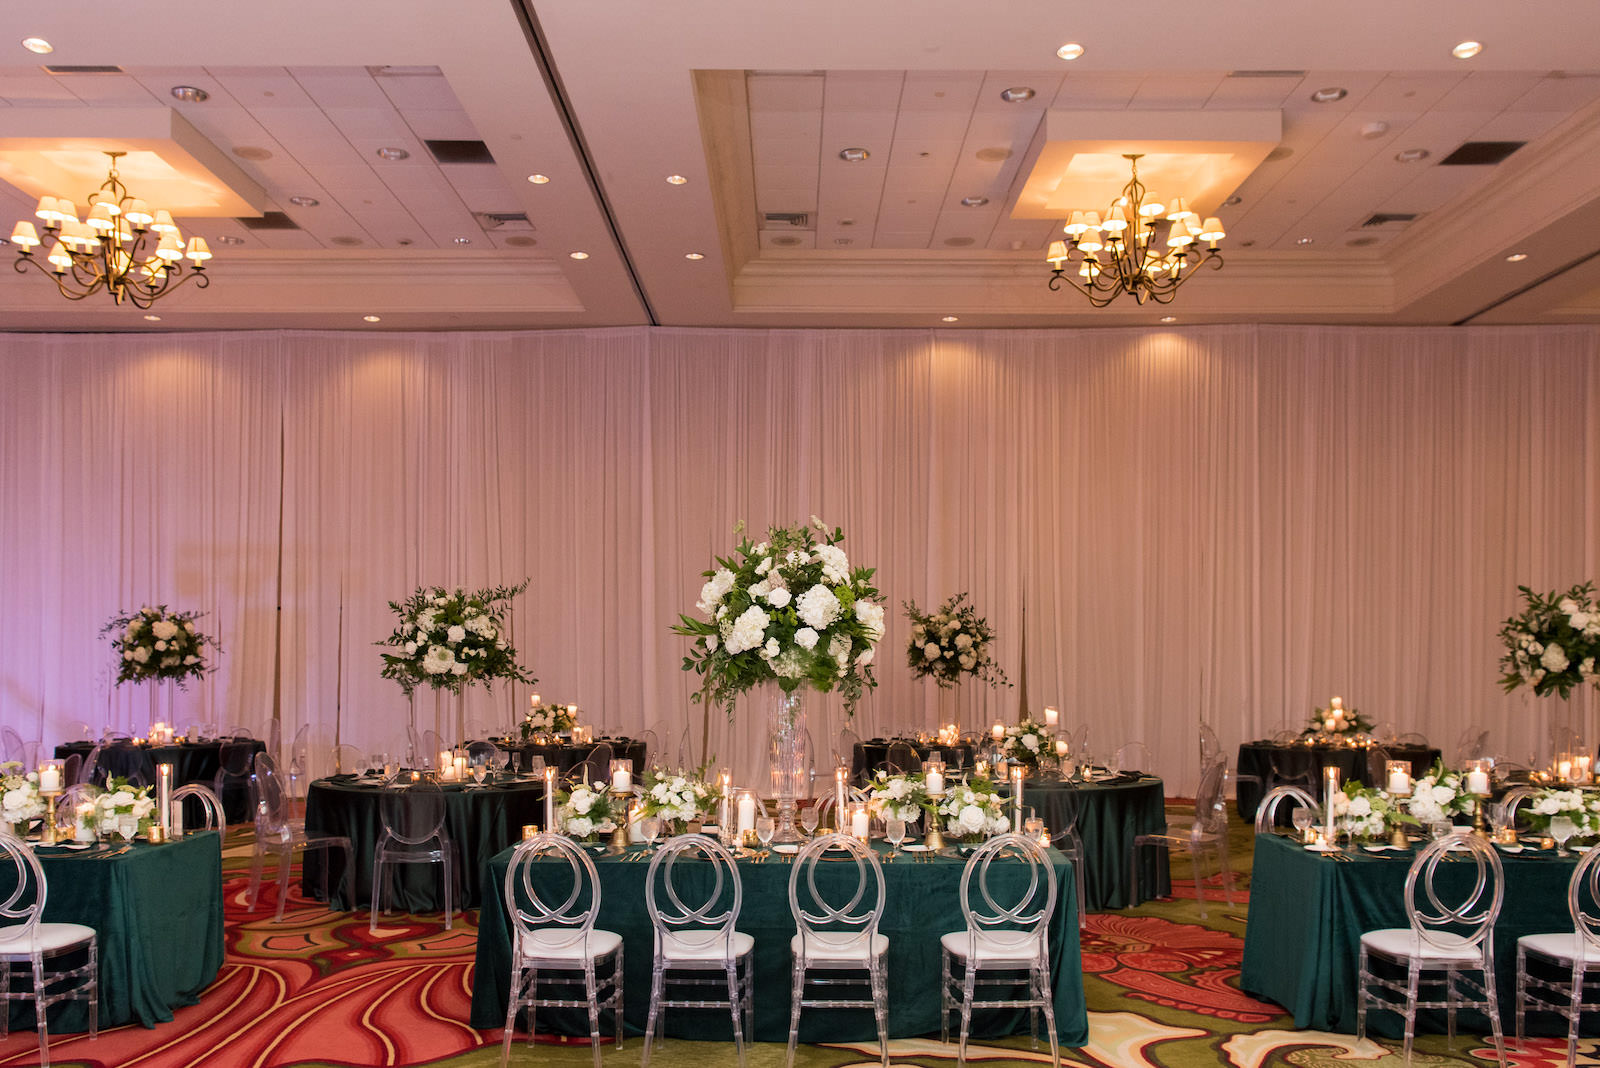 Elegant Wedding Reception Decor, Emerald Green Linens, Acrylic Chiavari Chairs, Tall White and Greenery Floral Centerpieces | Tampa Bay Wedding Planner Parties A'la Carte | Wedding Florist Bruce Wayne Florals | Table and Chair Rentals A Chair Affair | St. Pete Wedding Venue The Vinoy